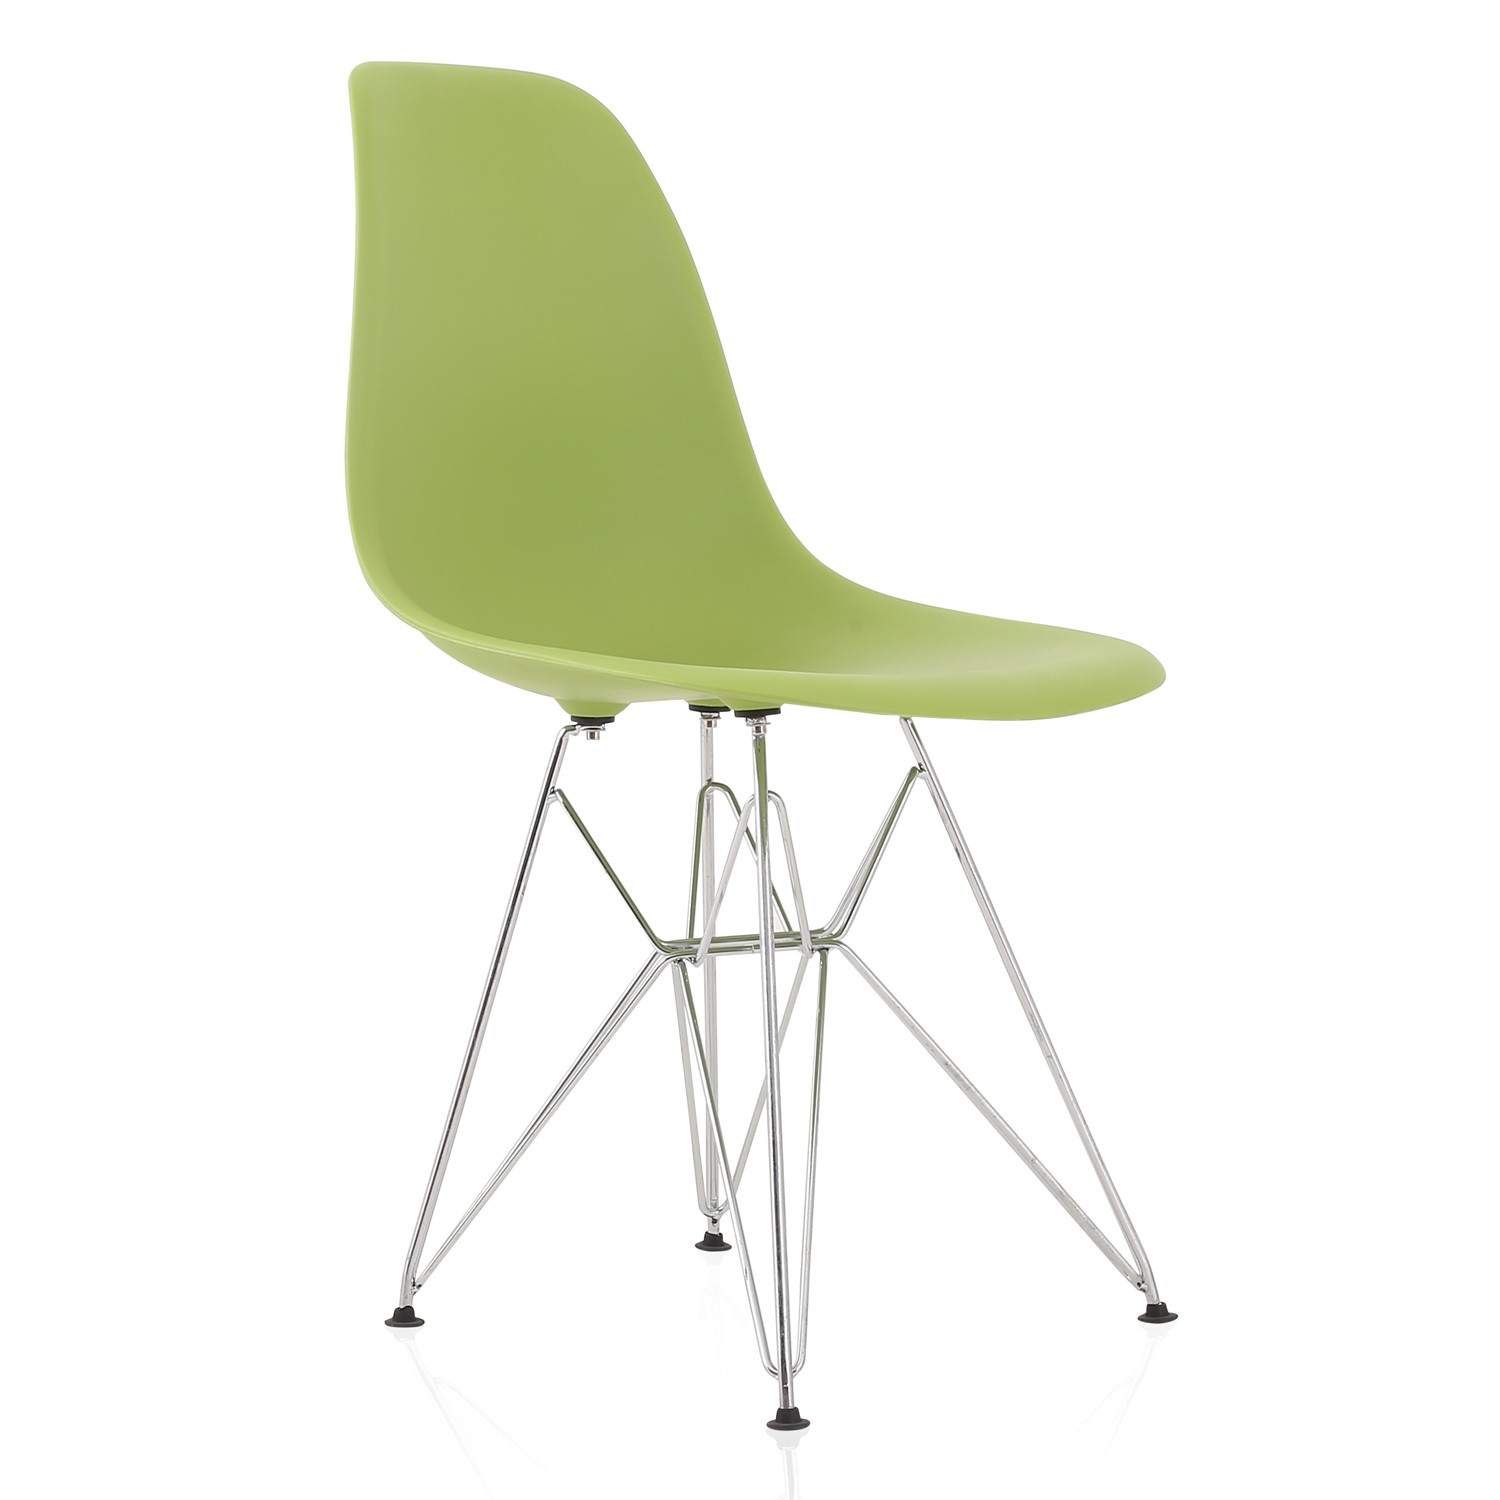 Eames Style DSR Molded Lime Green Plastic Dining Shell Chair with